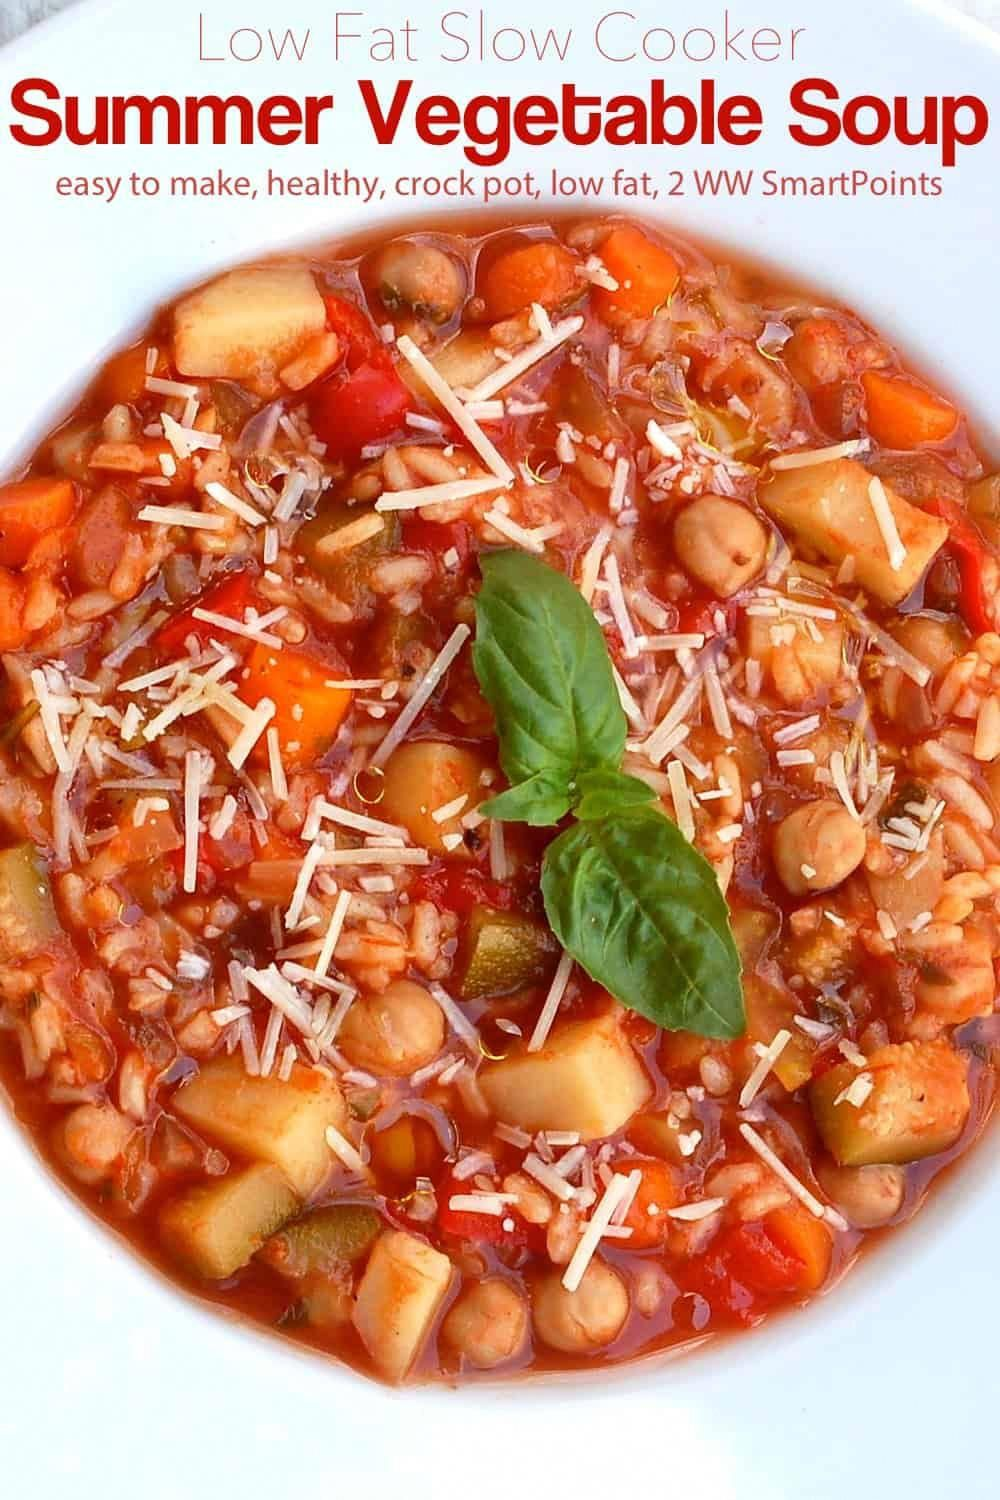 This Slow Cooker Summer Vegetable Soup (minestrone) is delicious hot and even better served as the Italians do during hot weather, at room temperature with a drizzle of extra virgin olive oil and sprinkling of Parmesan.